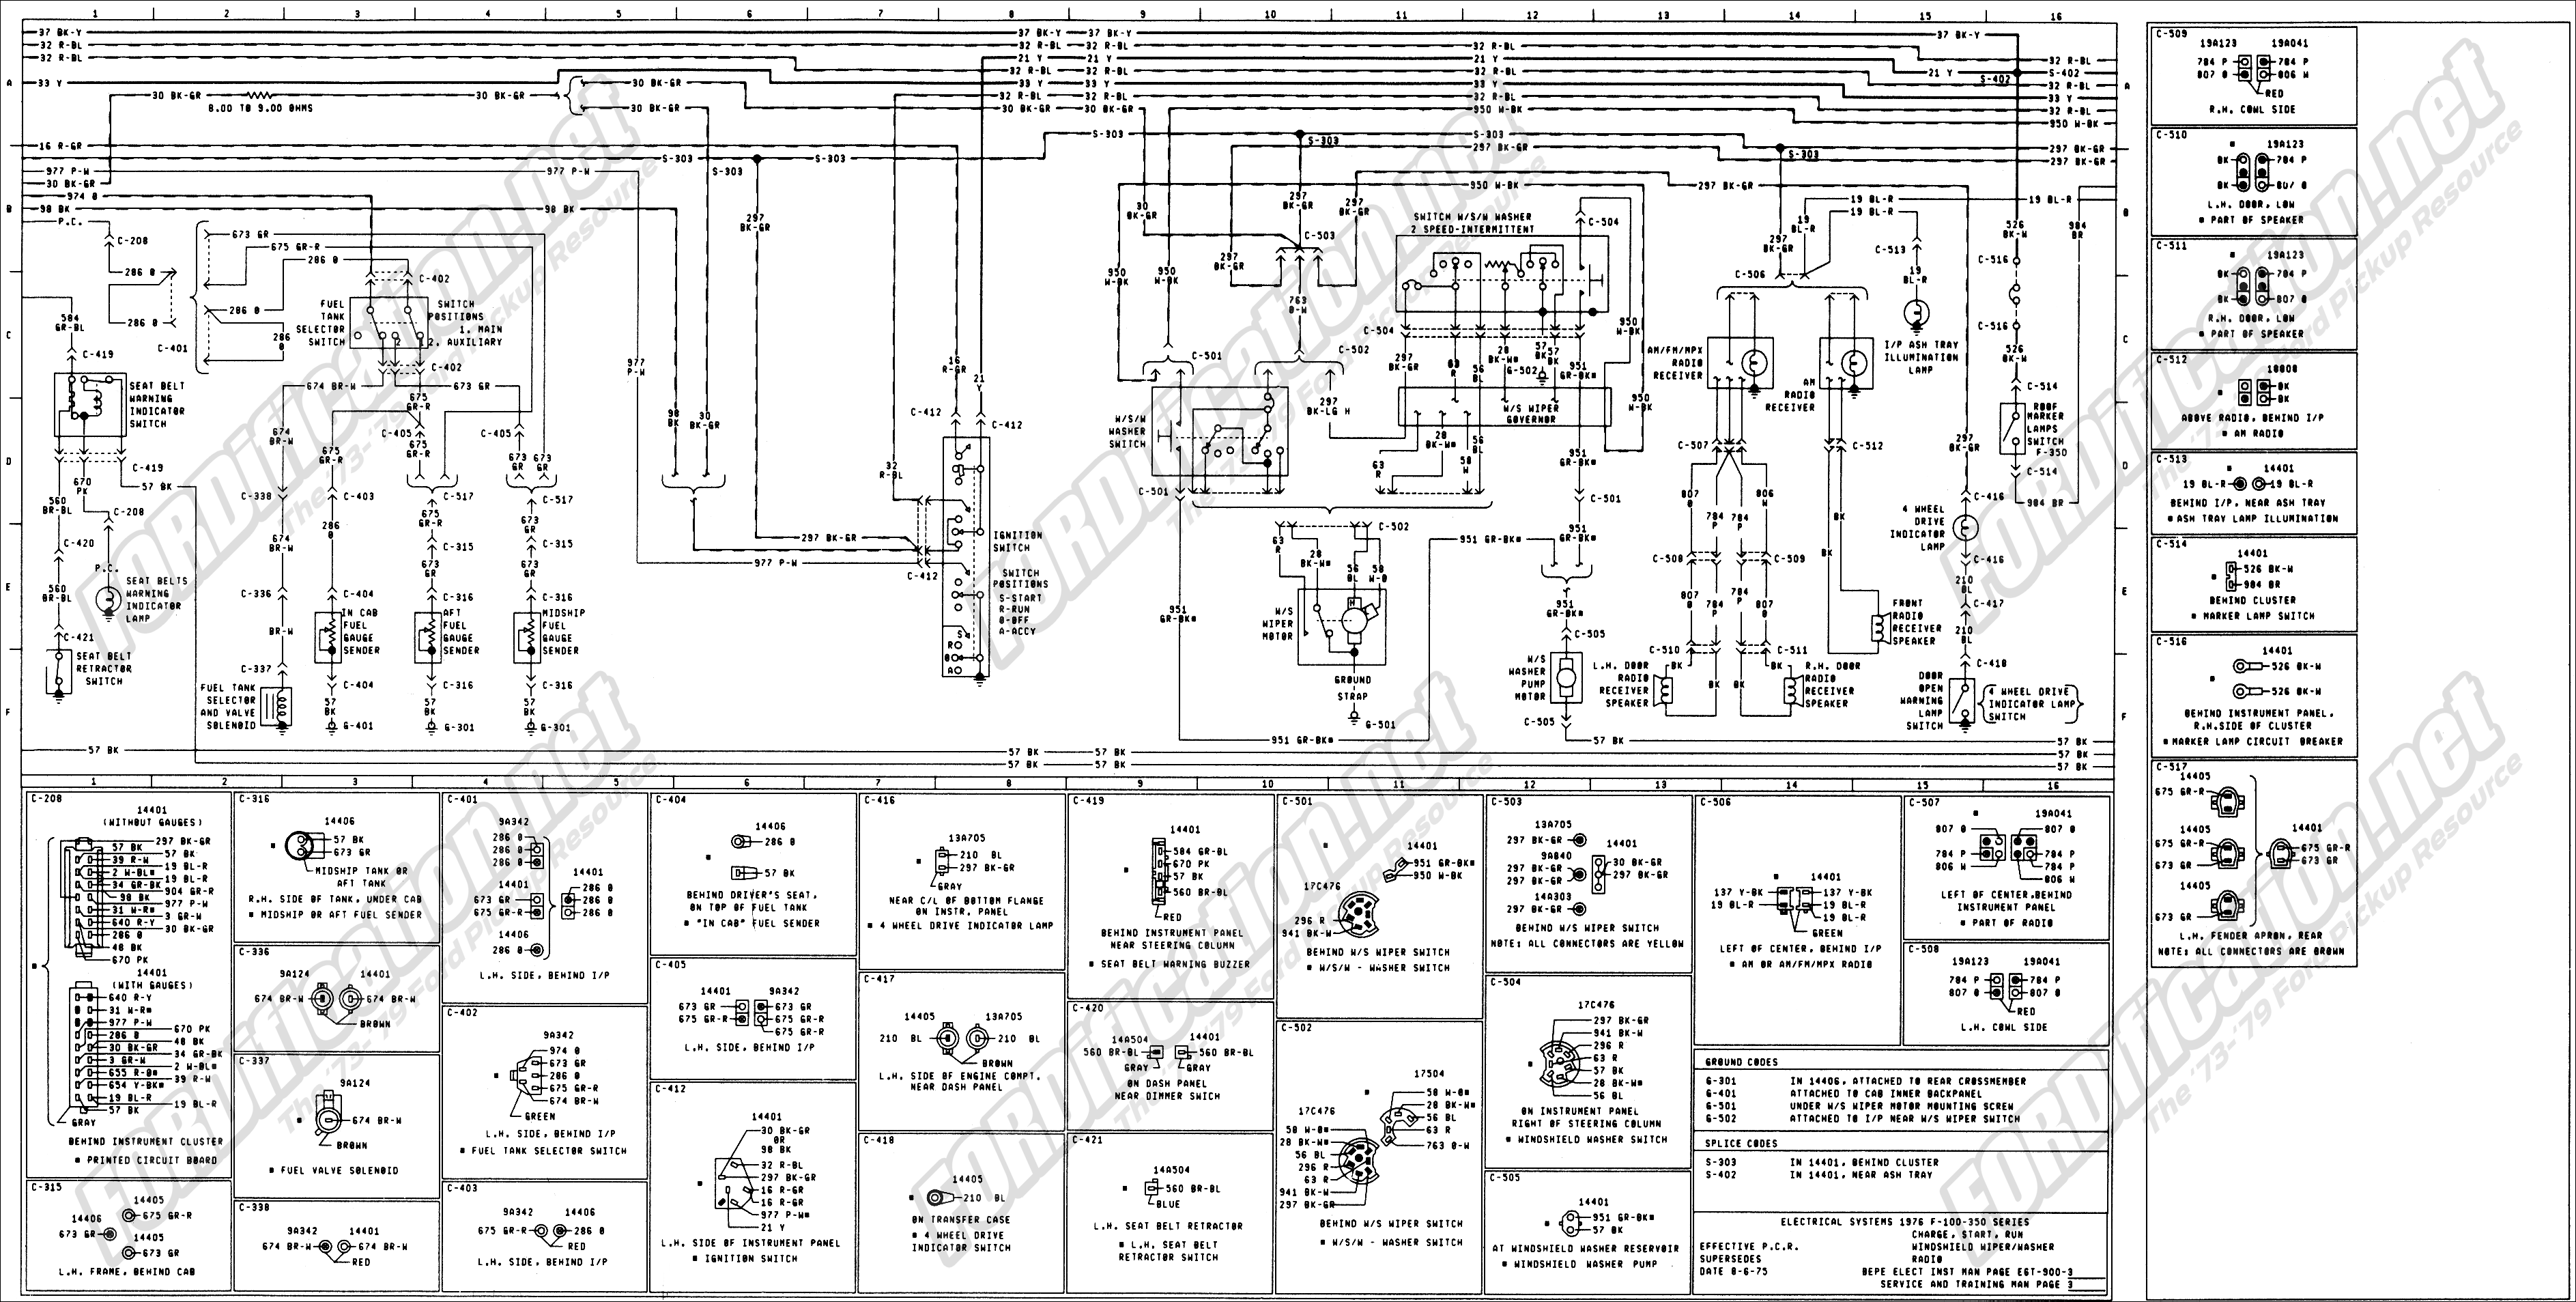 wiring diagram for 1975 ford f250 circuit diagram schematic ford ignition  spark plugs diagram 1973 1979